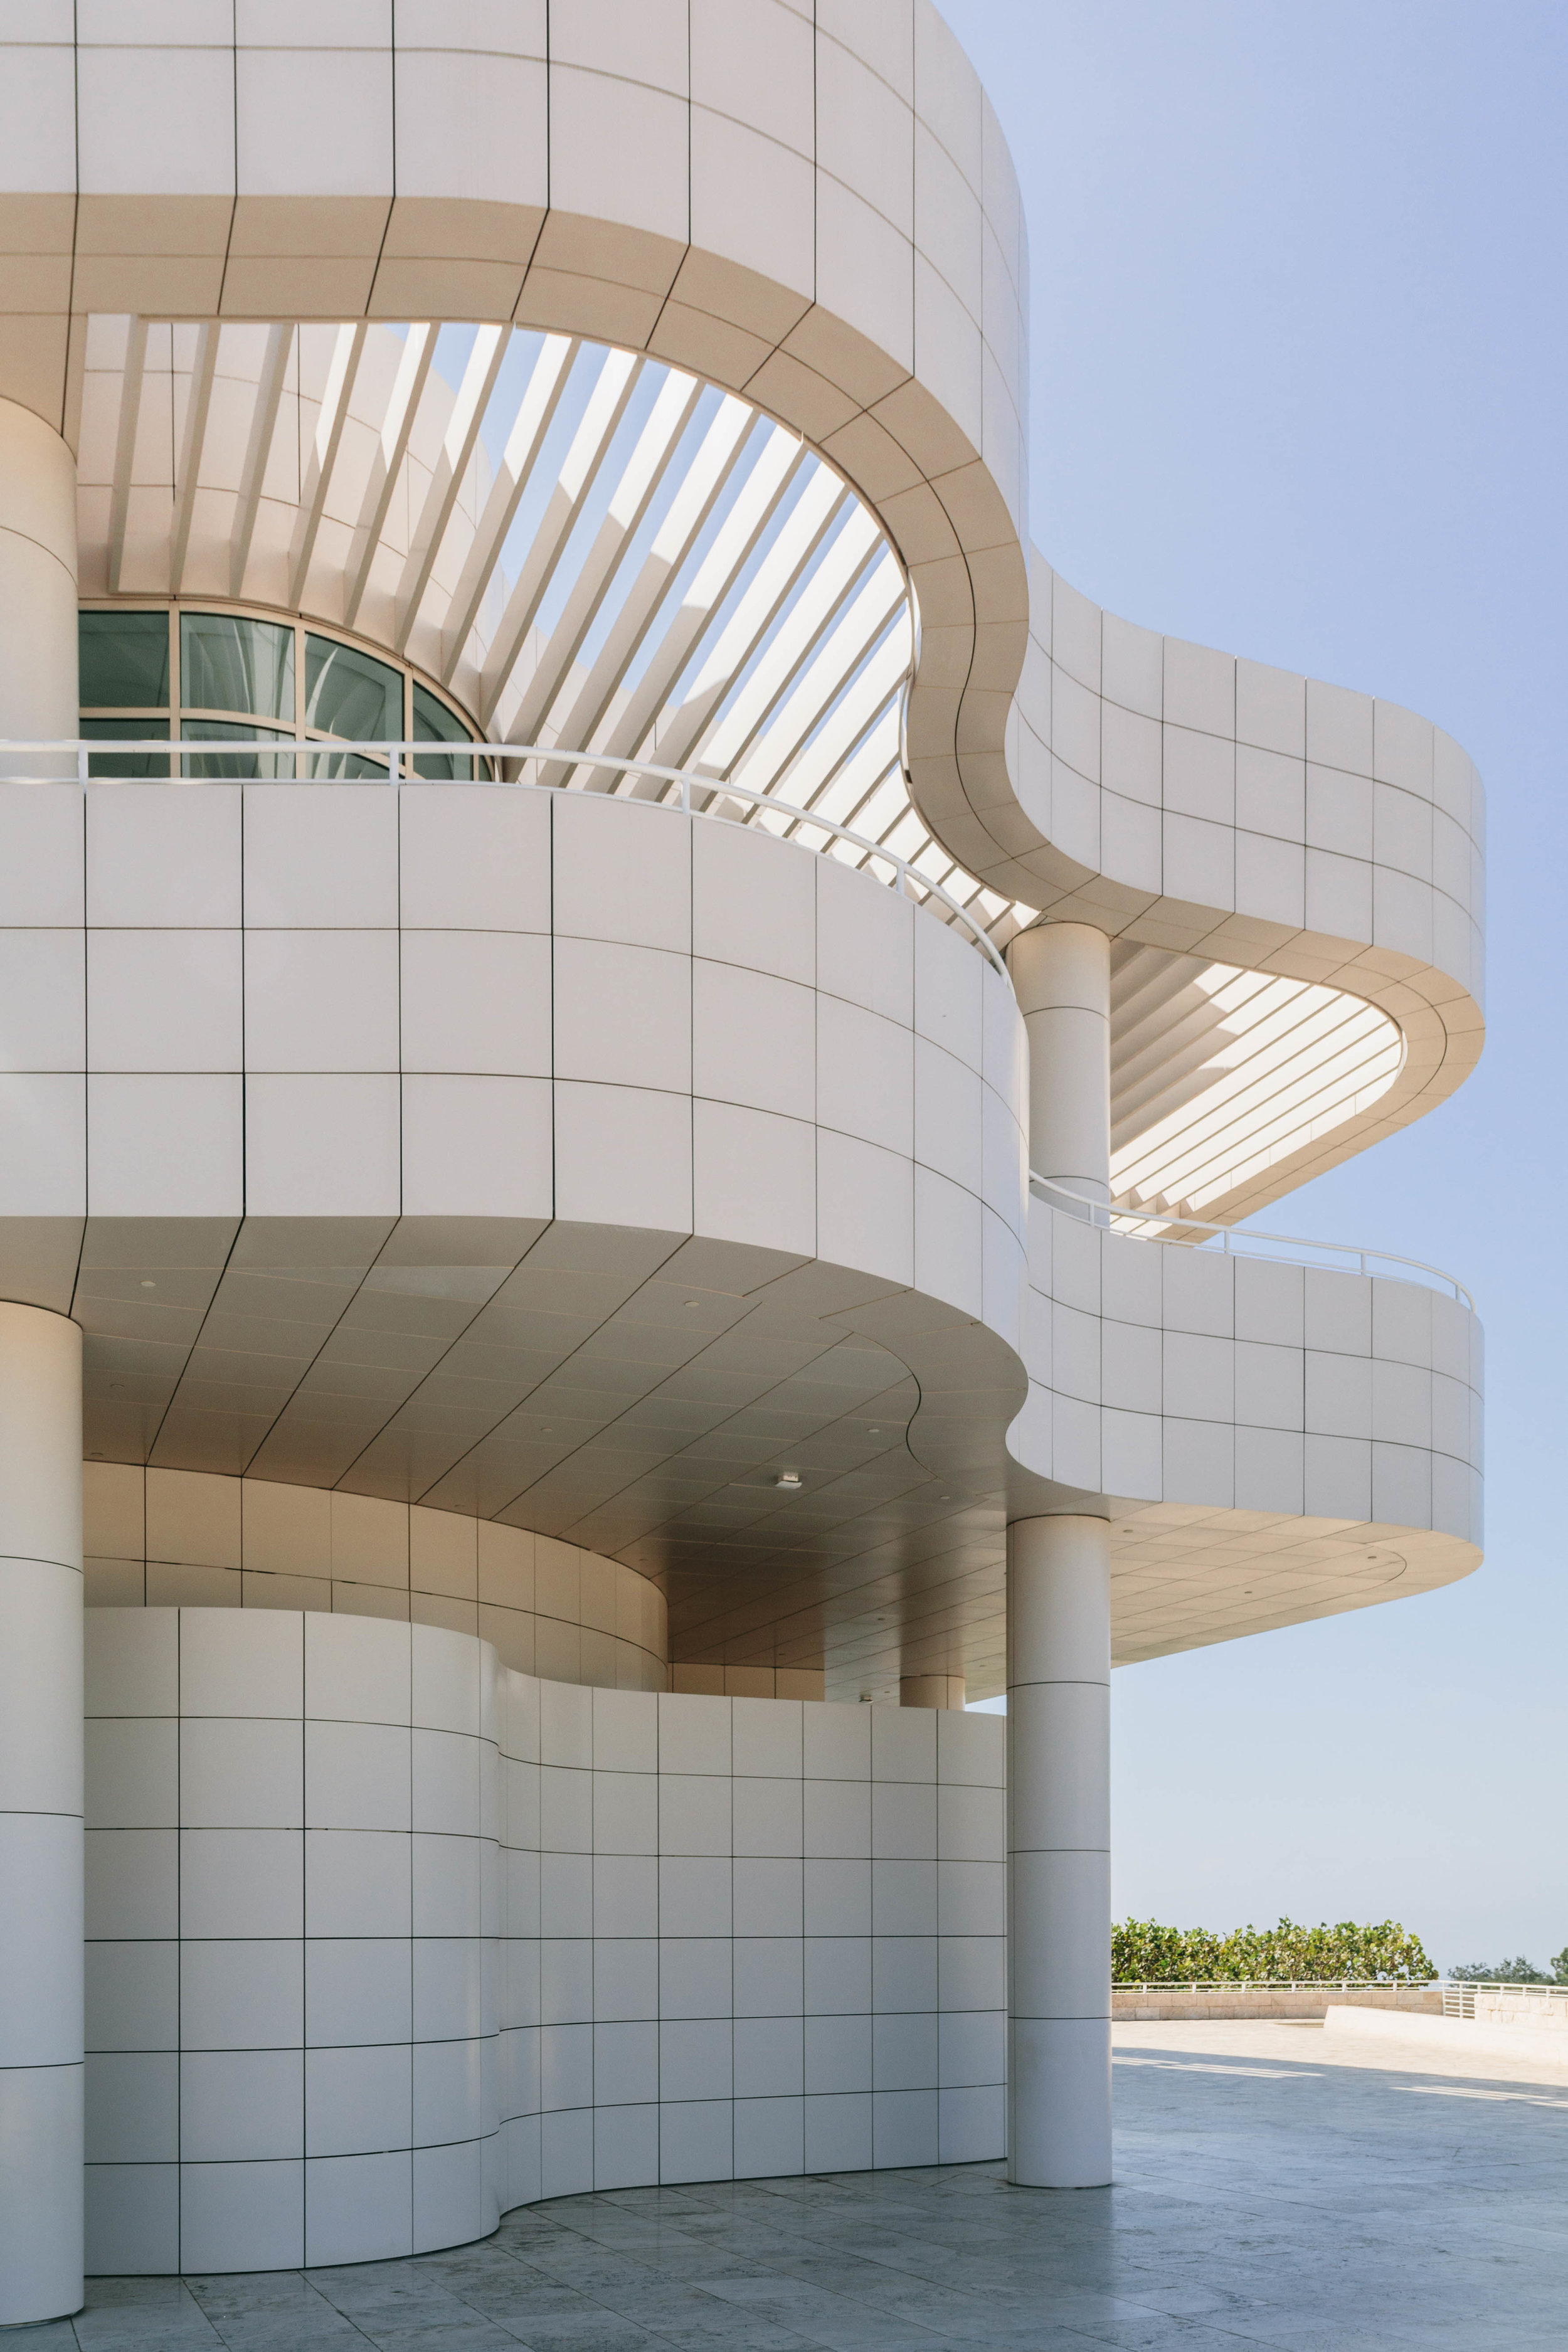 Our first view of Richard Meier's genius design of the Getty Museum.